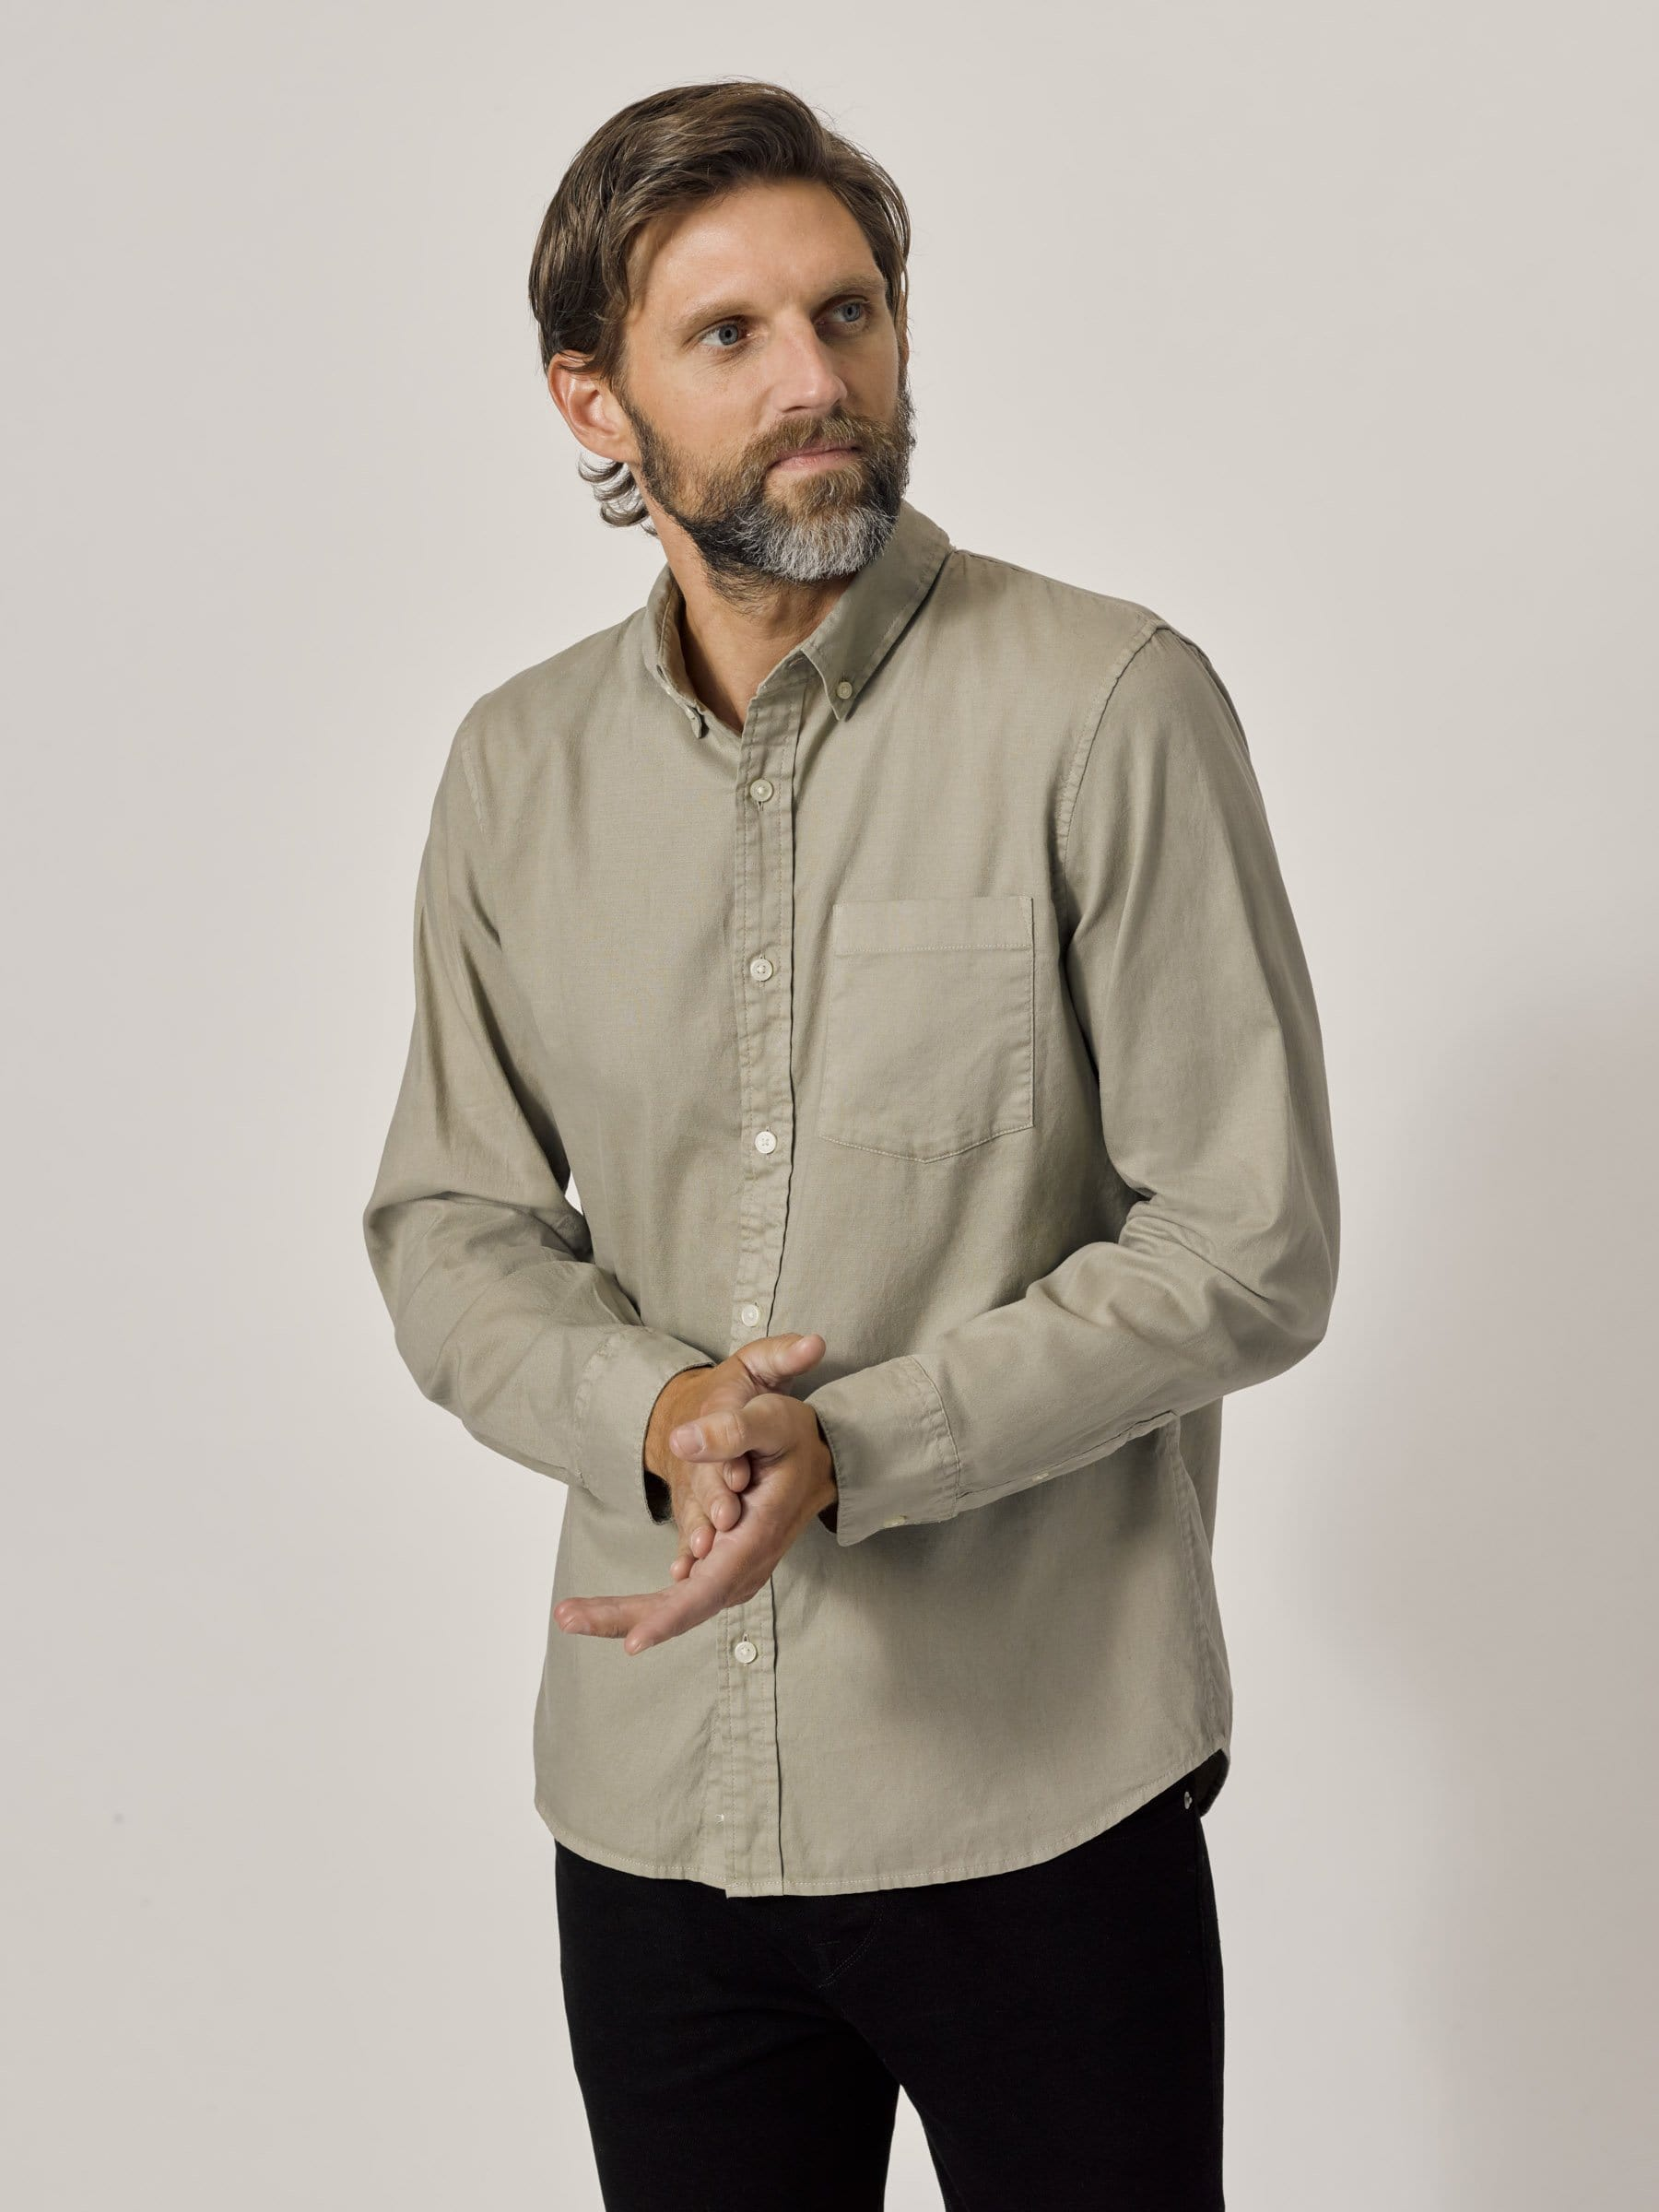 Buck Mason - Yuma Perfect Oxford One Pocket Shirt